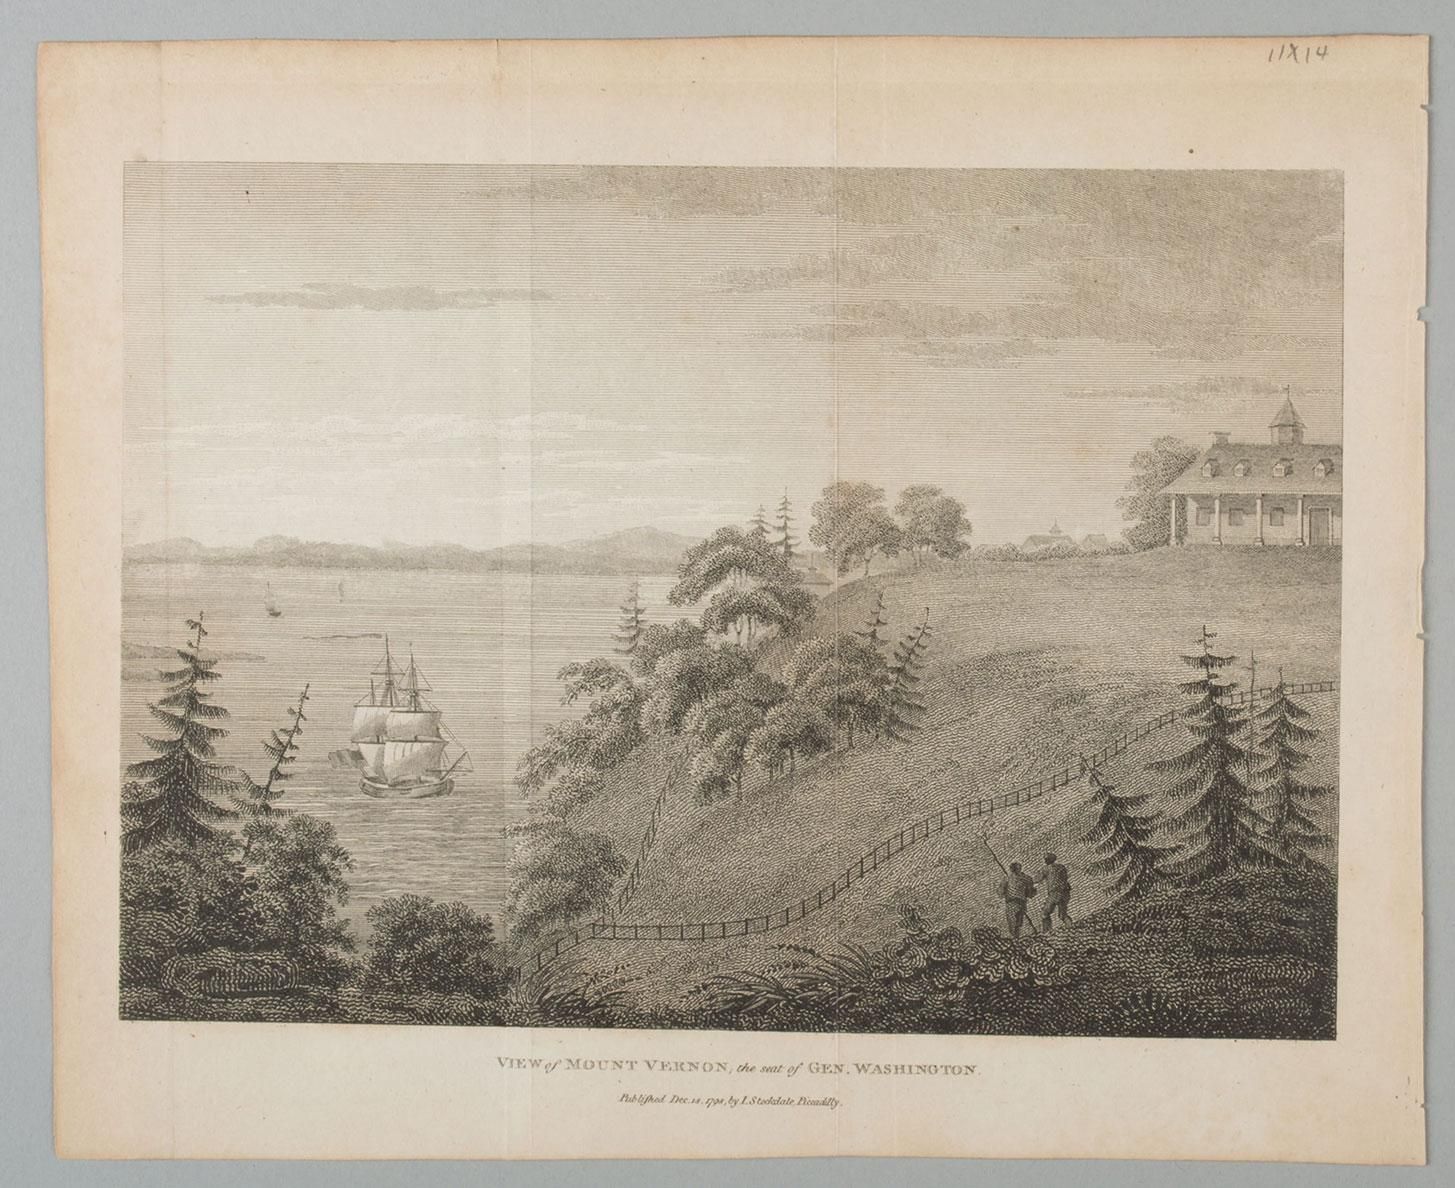 View of Mount Vernon, the Seat of Gen. Washington, Isaac Weld, MVLA EV-4361.2/RP-646, Gift of Mrs. John H. Guy, Jr., Vice Regent for Virginia, 1995.